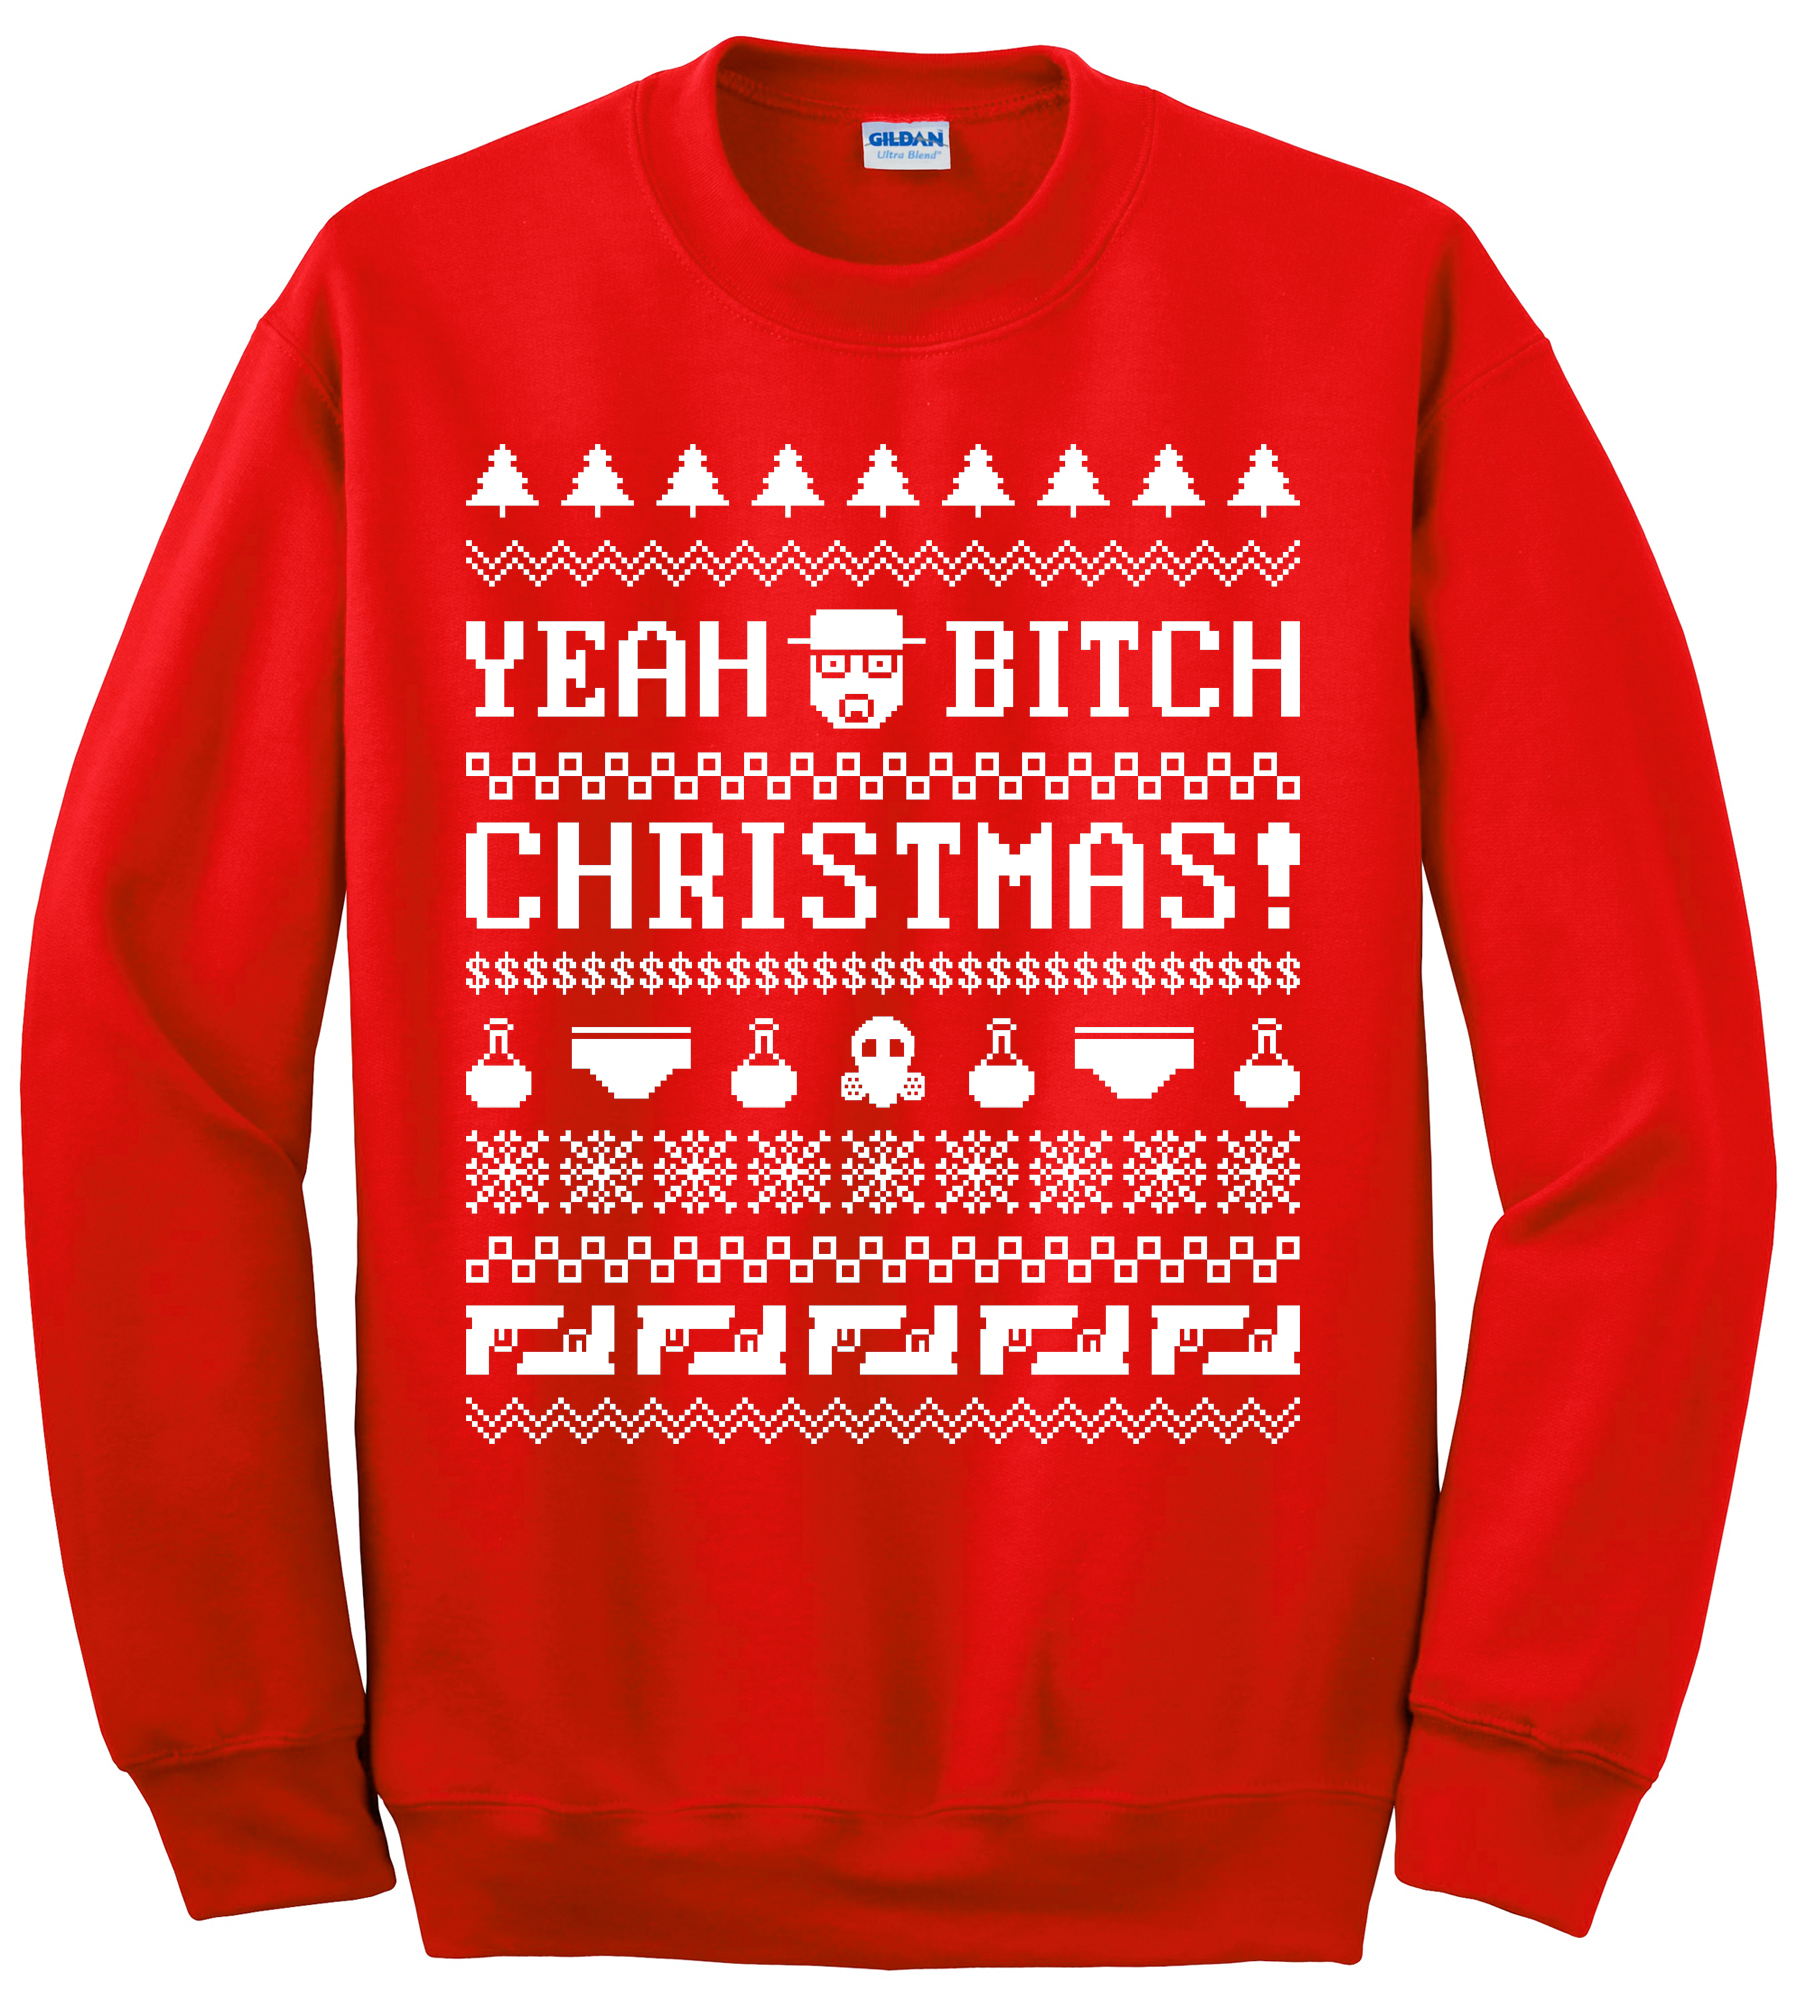 13 Awesome Christmas Sweaters You Need In Your Life